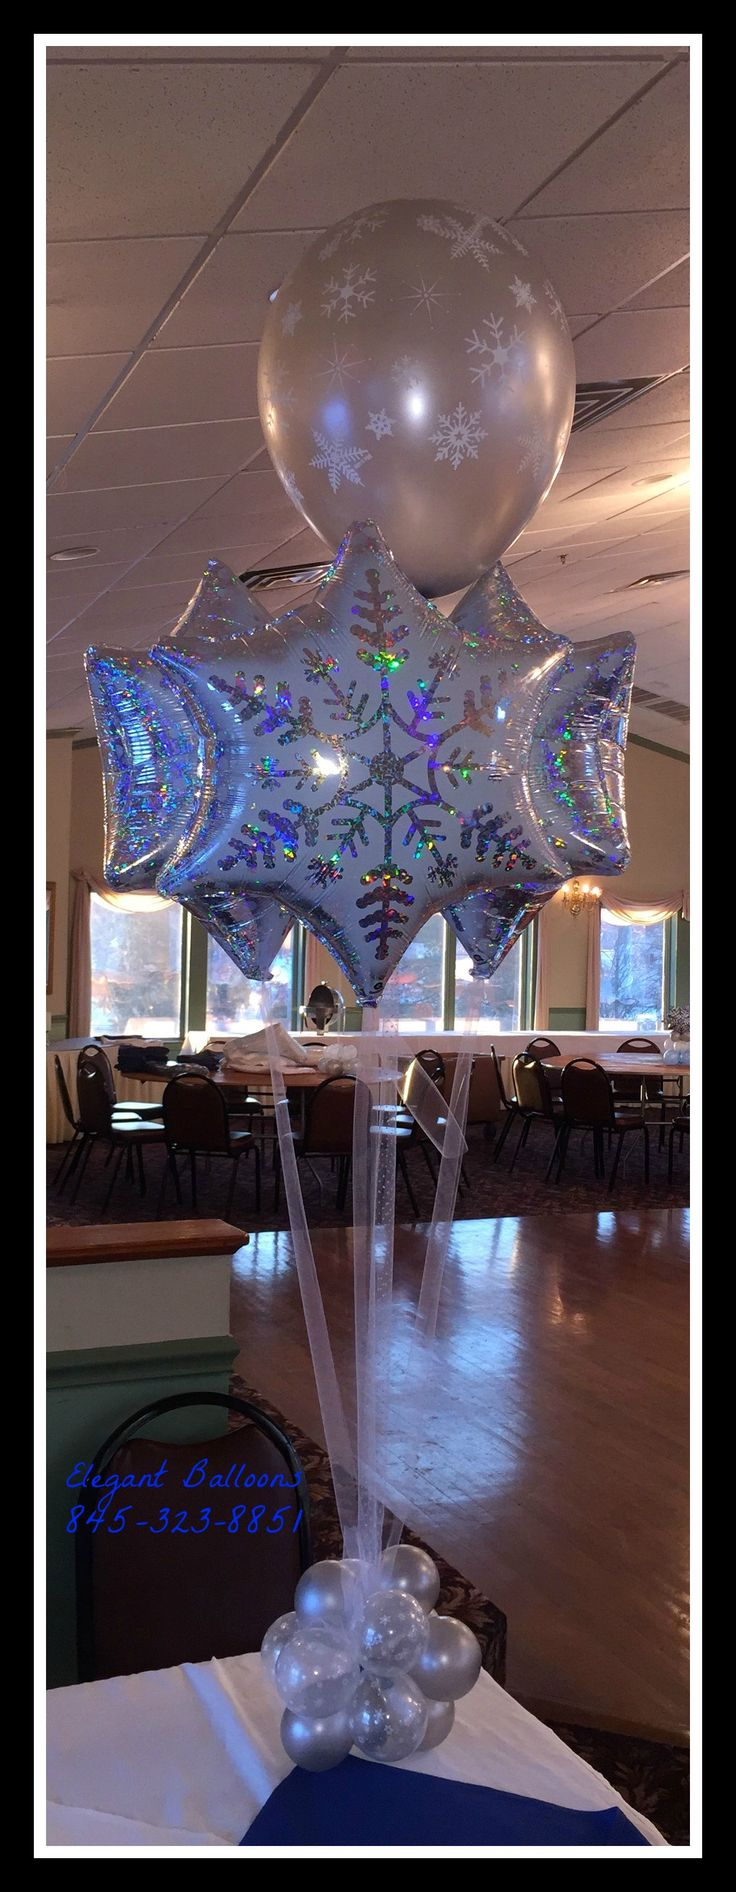 Snowflake winter wonderland centerpiece